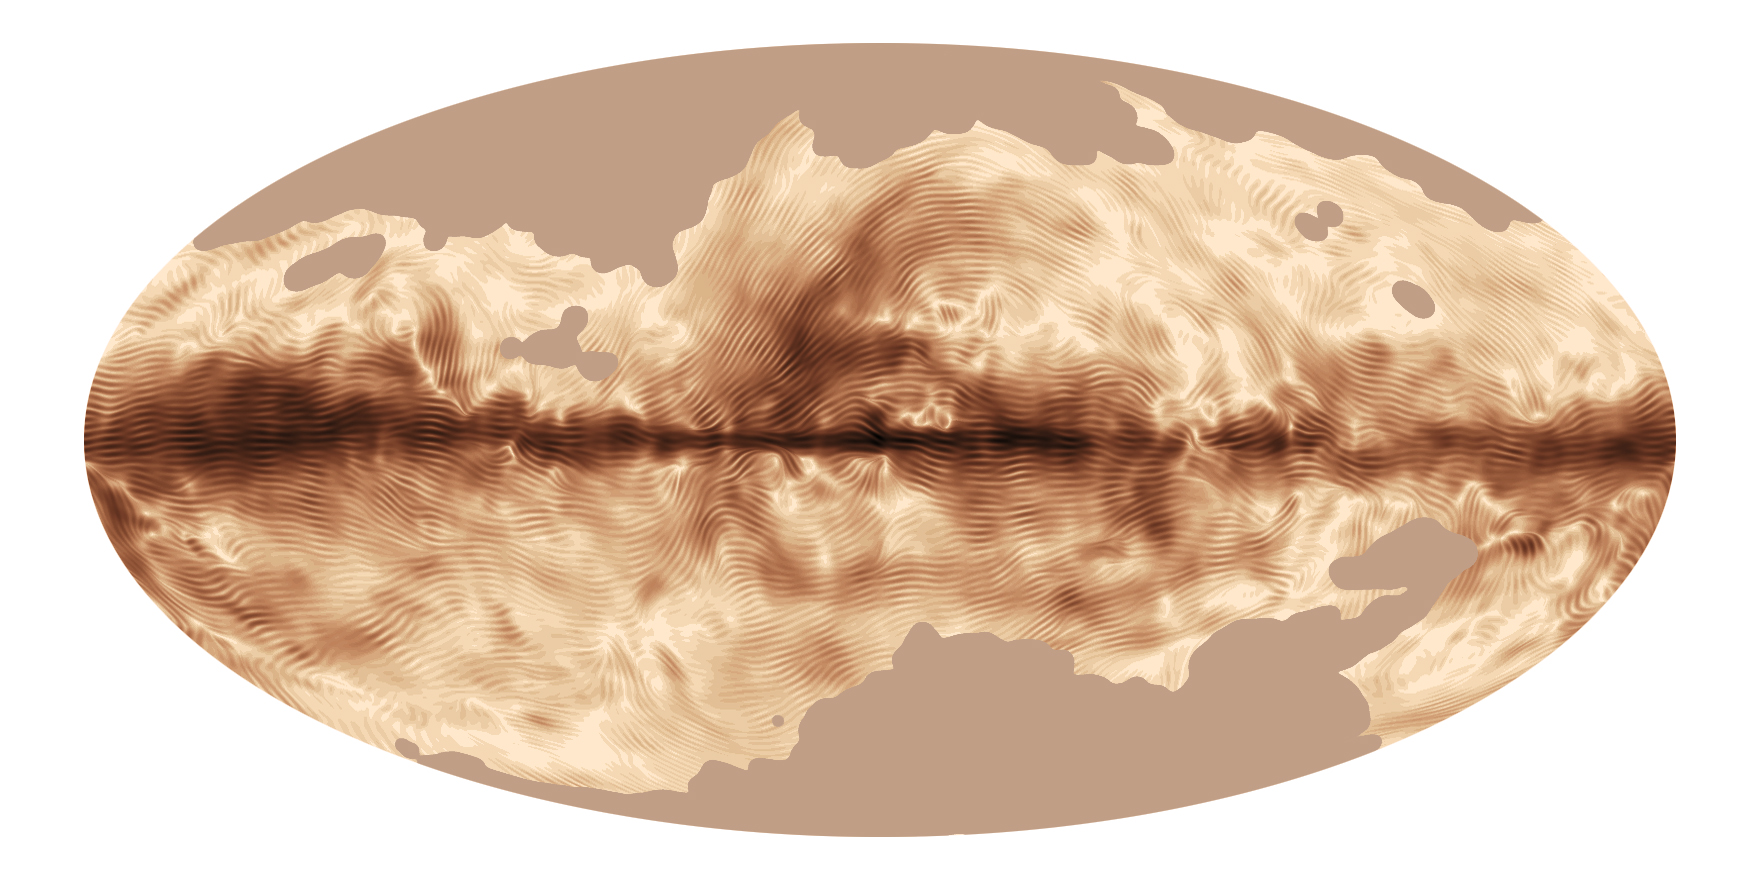 Magnetic 'Fingerprints' of Milky Way Galaxy Revealed in New Map (Image)